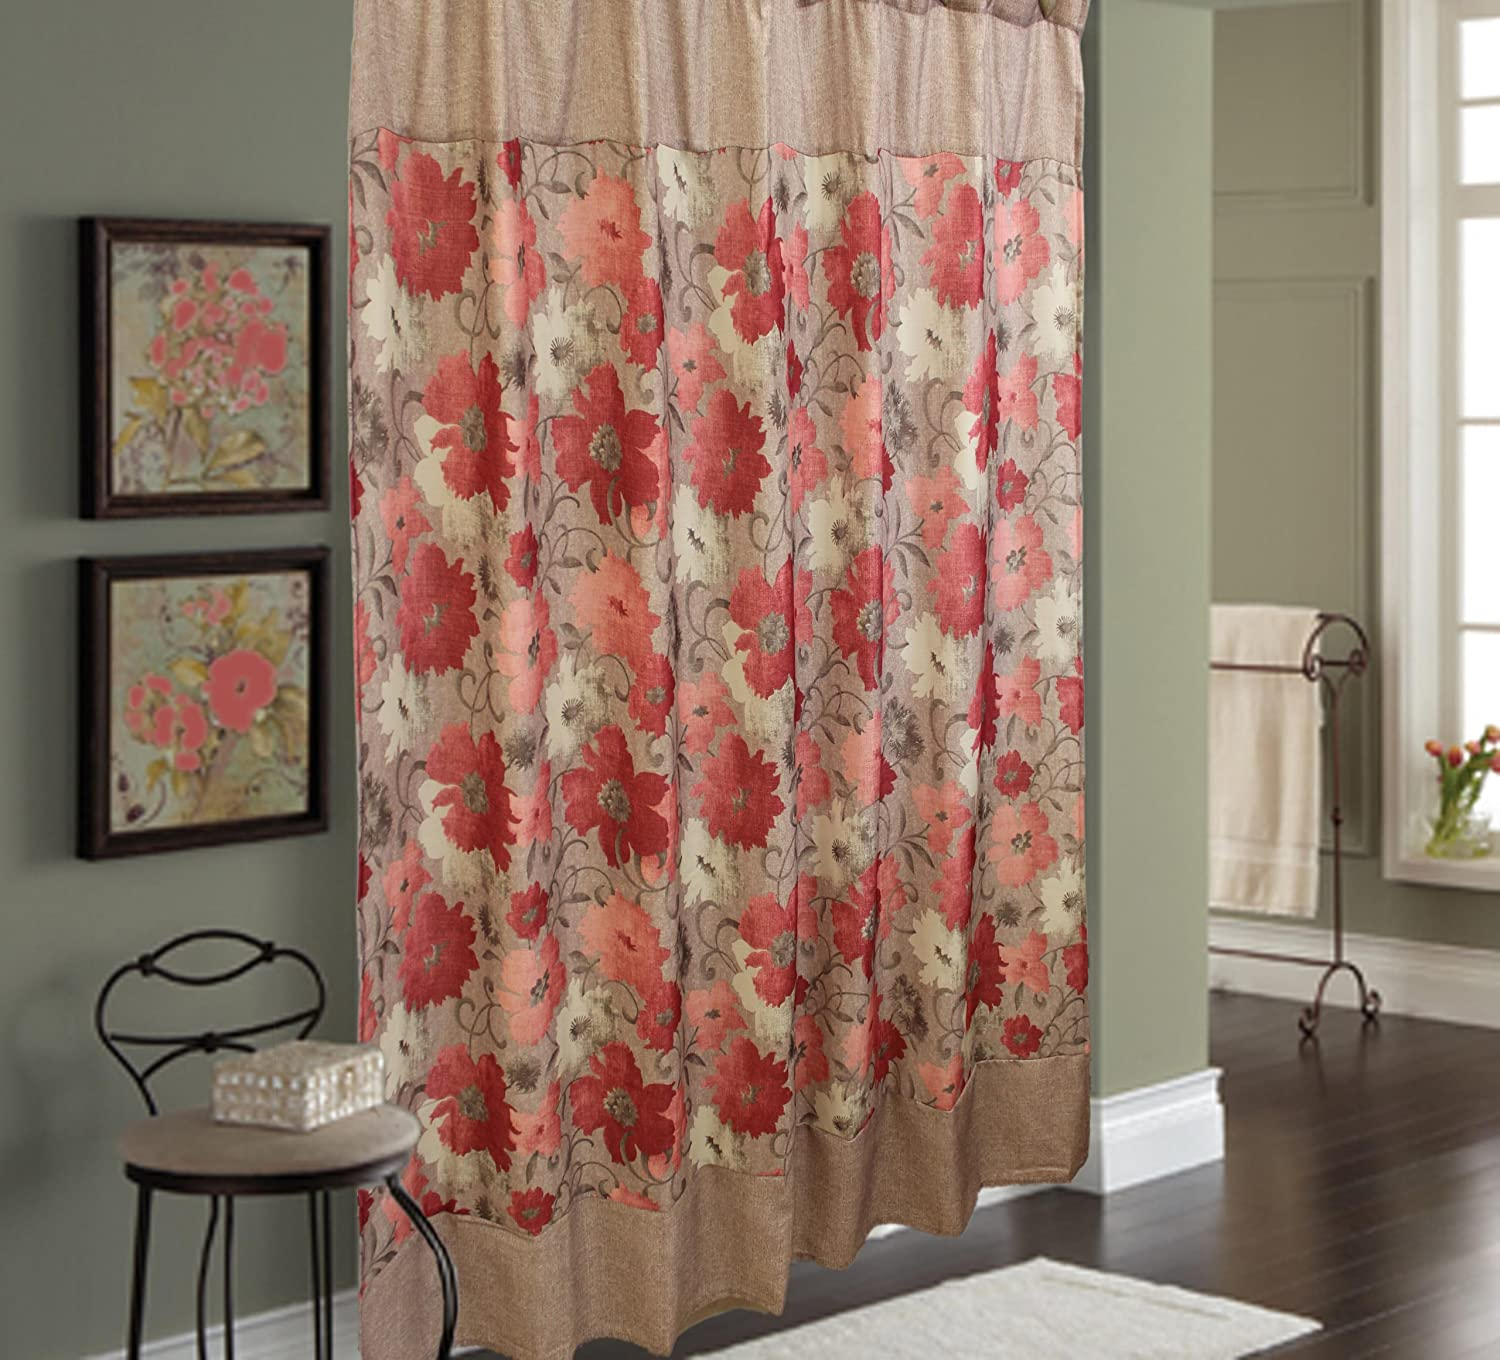 Sherry Kline Toulon Sales of SALE Max 47% OFF items from new works Shower with Set Hook Curtain